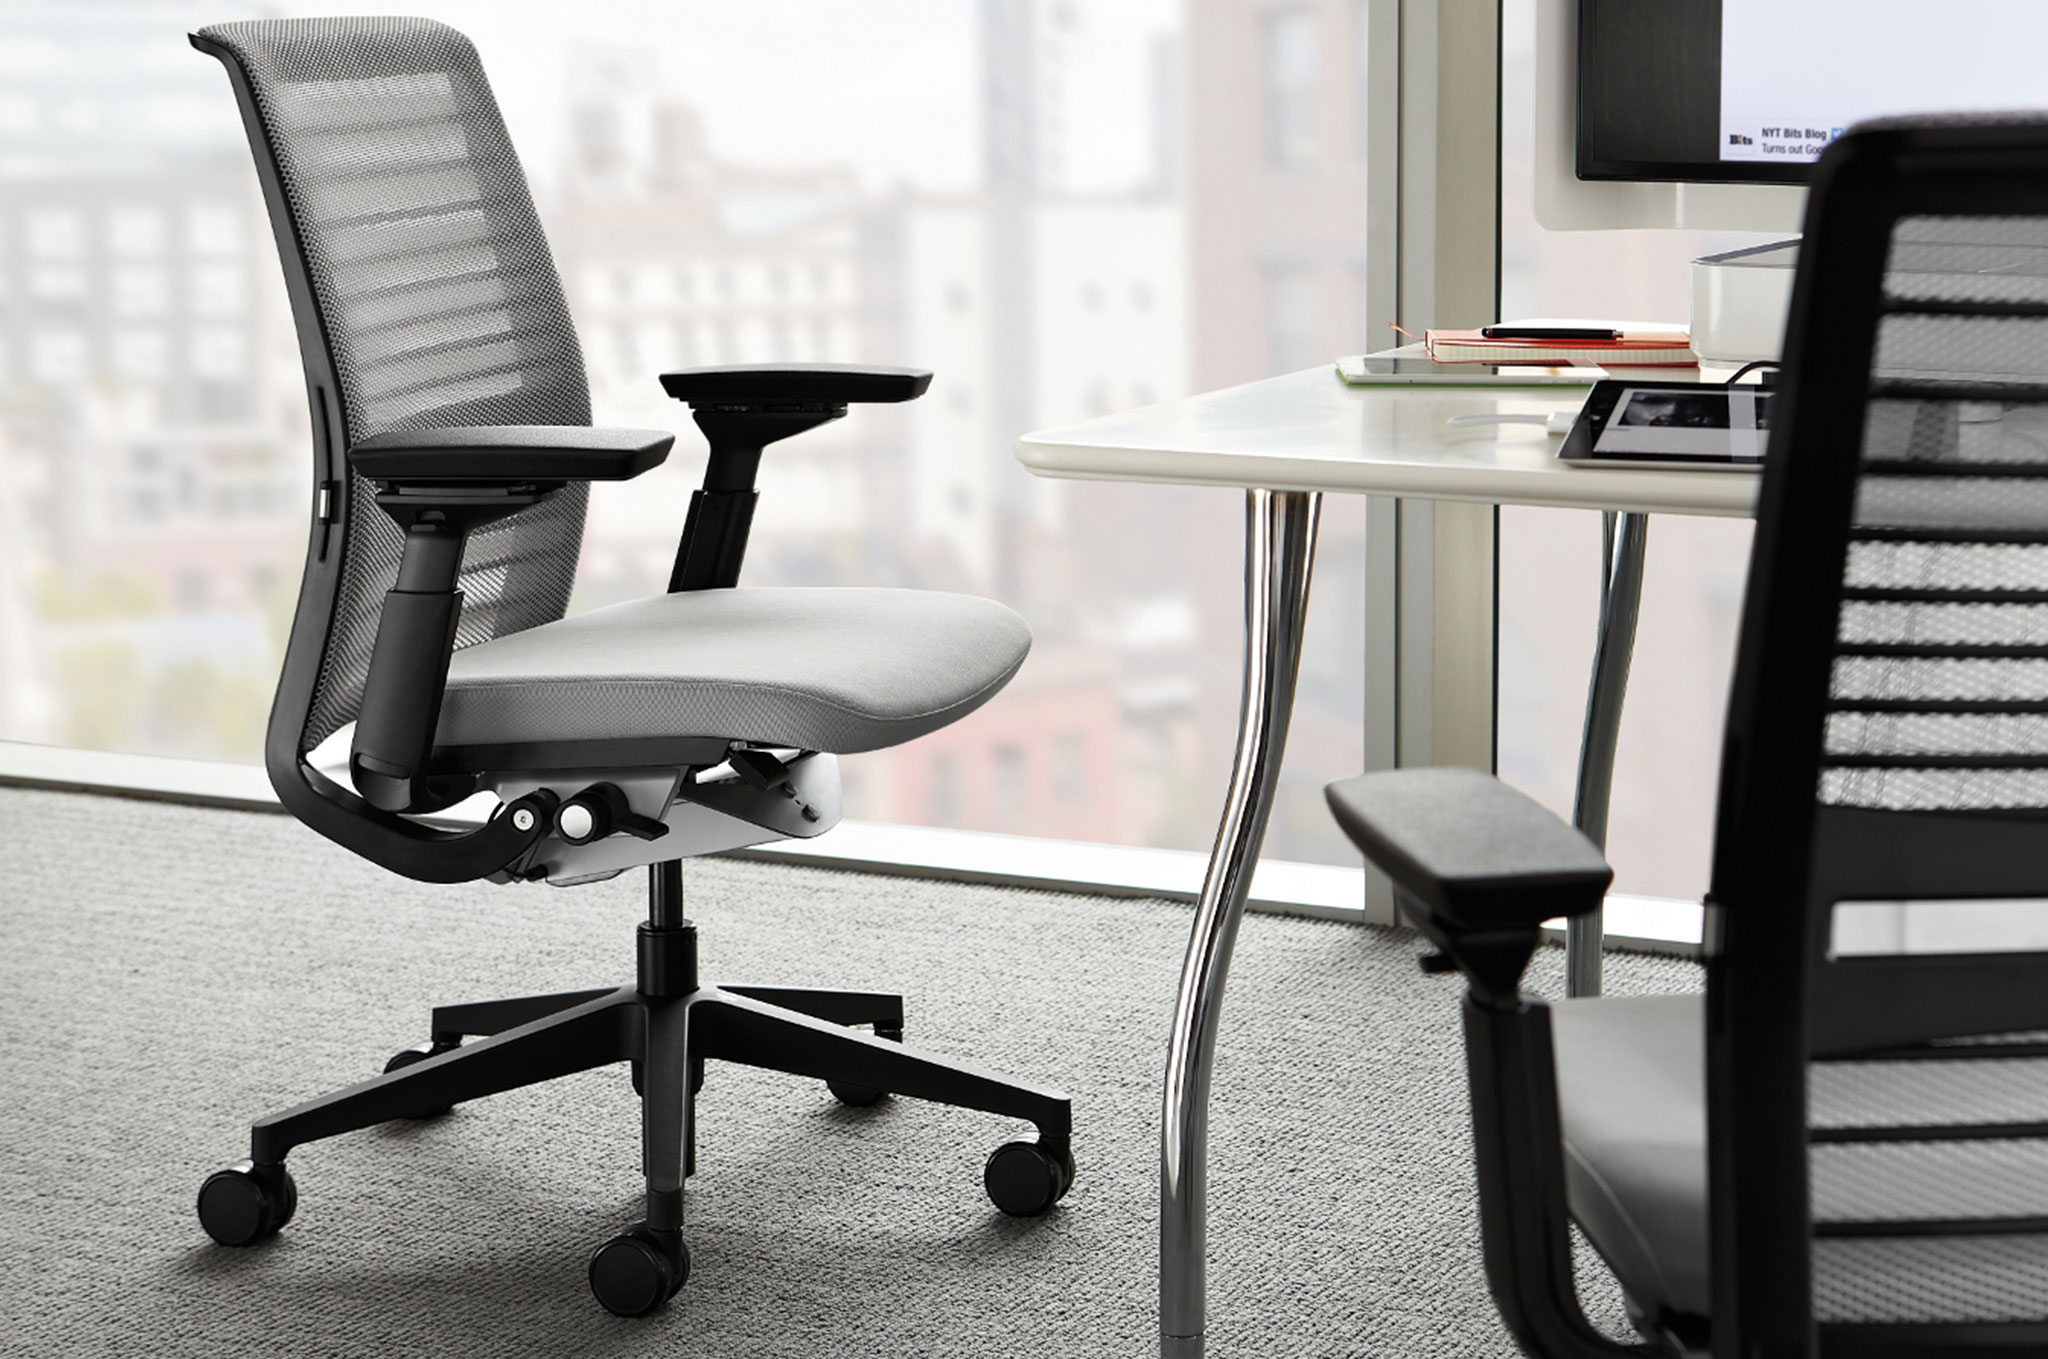 The Best Office And Medical Chairs That Keep You Comfortable And Focused At Work Ares Massage Chairs